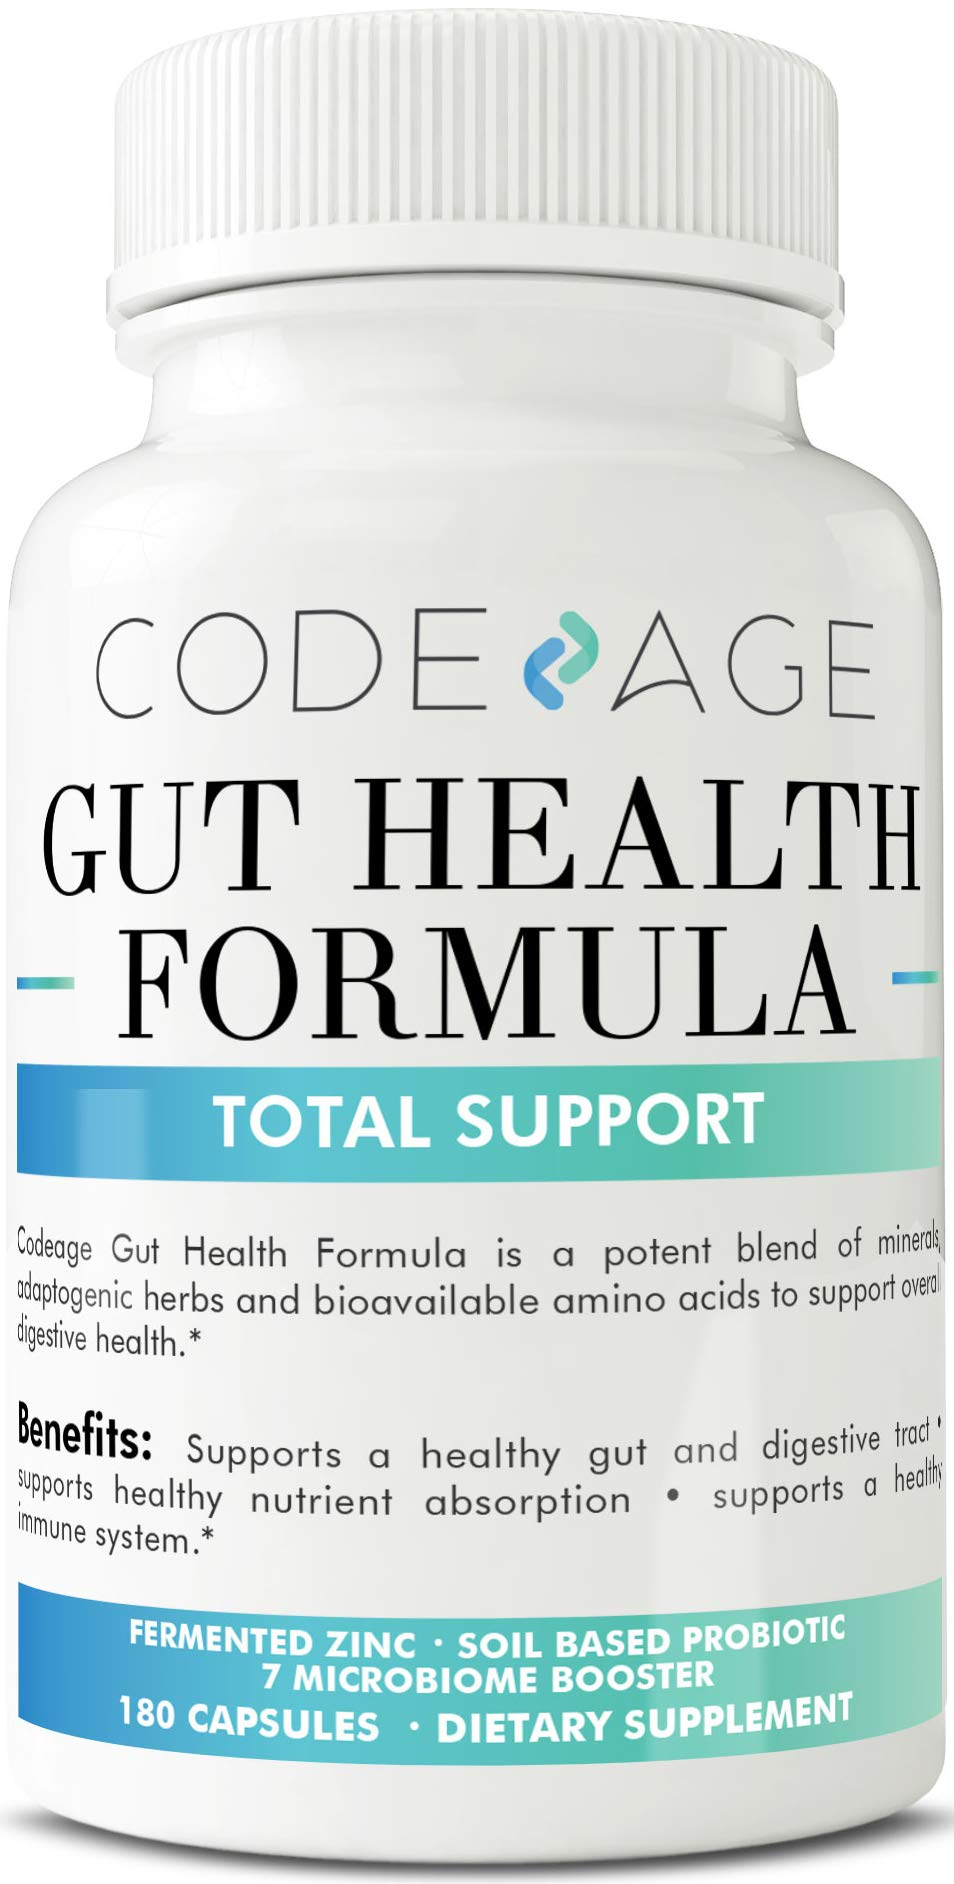 Leaky Gut Formula Supplements - 180 Count - Gut Integrity Blend of L-Glutamine, Licorice Root (DGL), SBO Probiotics and Prebiotics 10 Billion CFUs* Per Serving